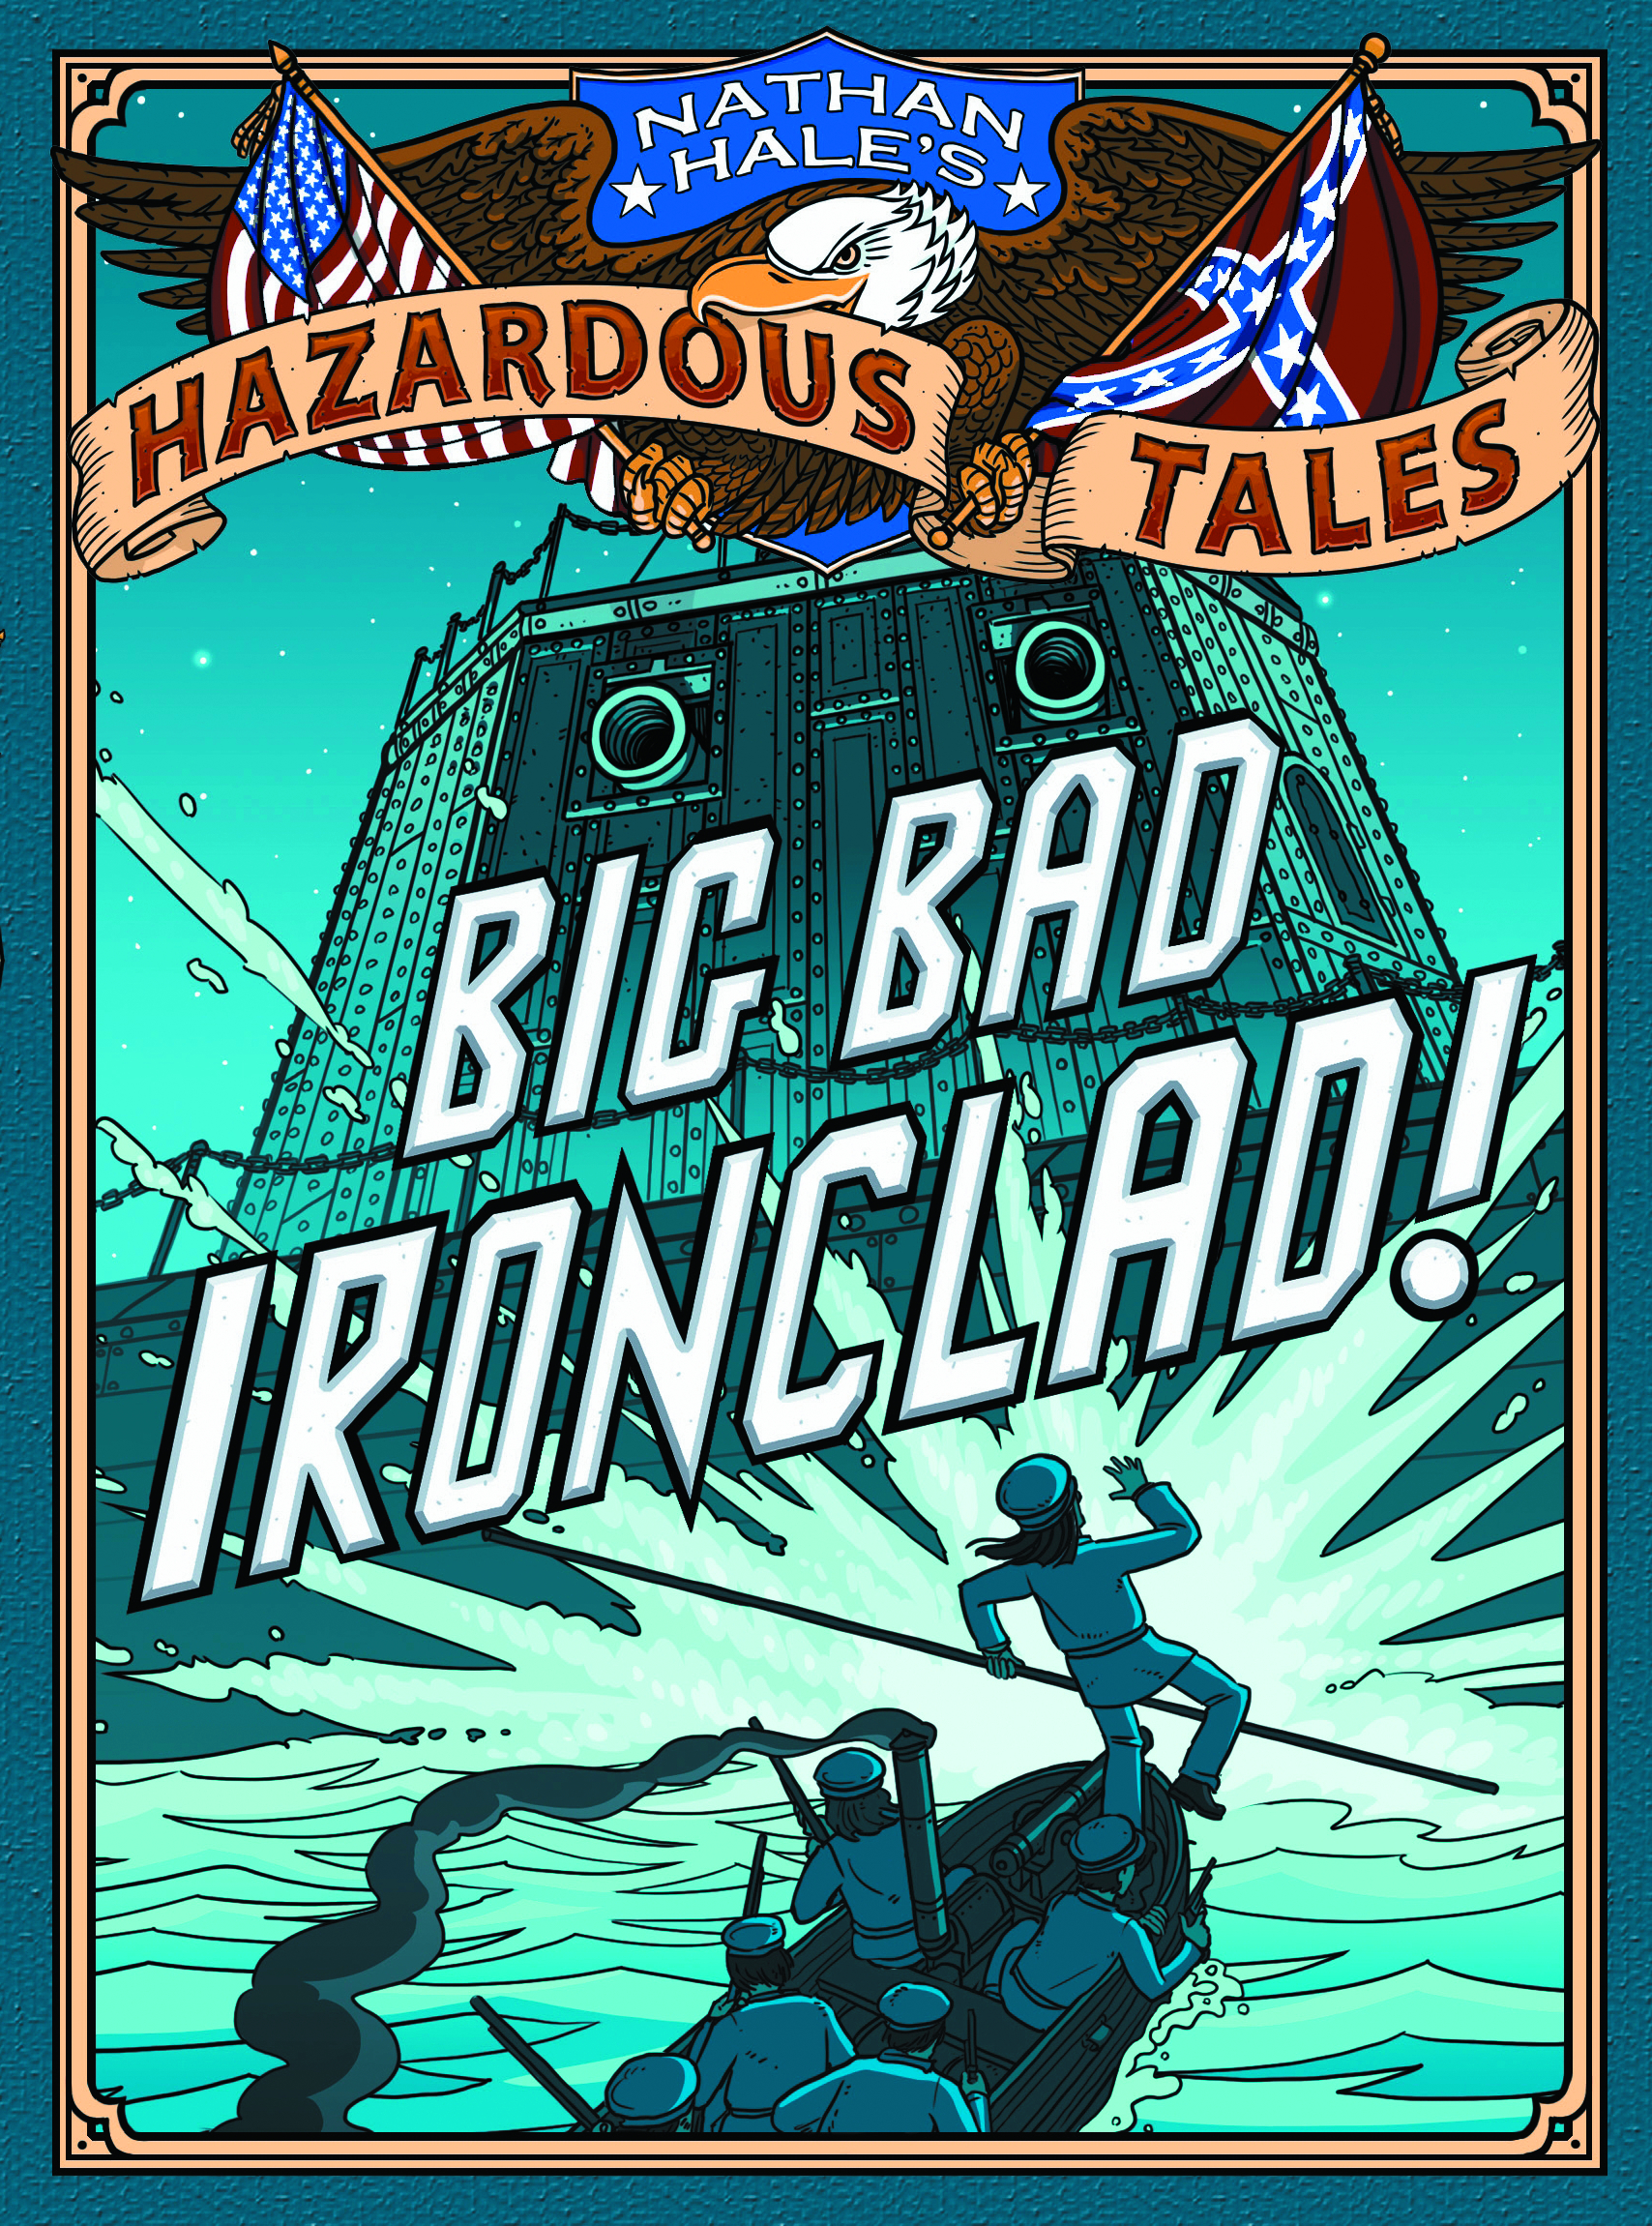 NATHAN HALES HAZARDOUS TALES GN VOL 02 BIG BAD IRONCLAD